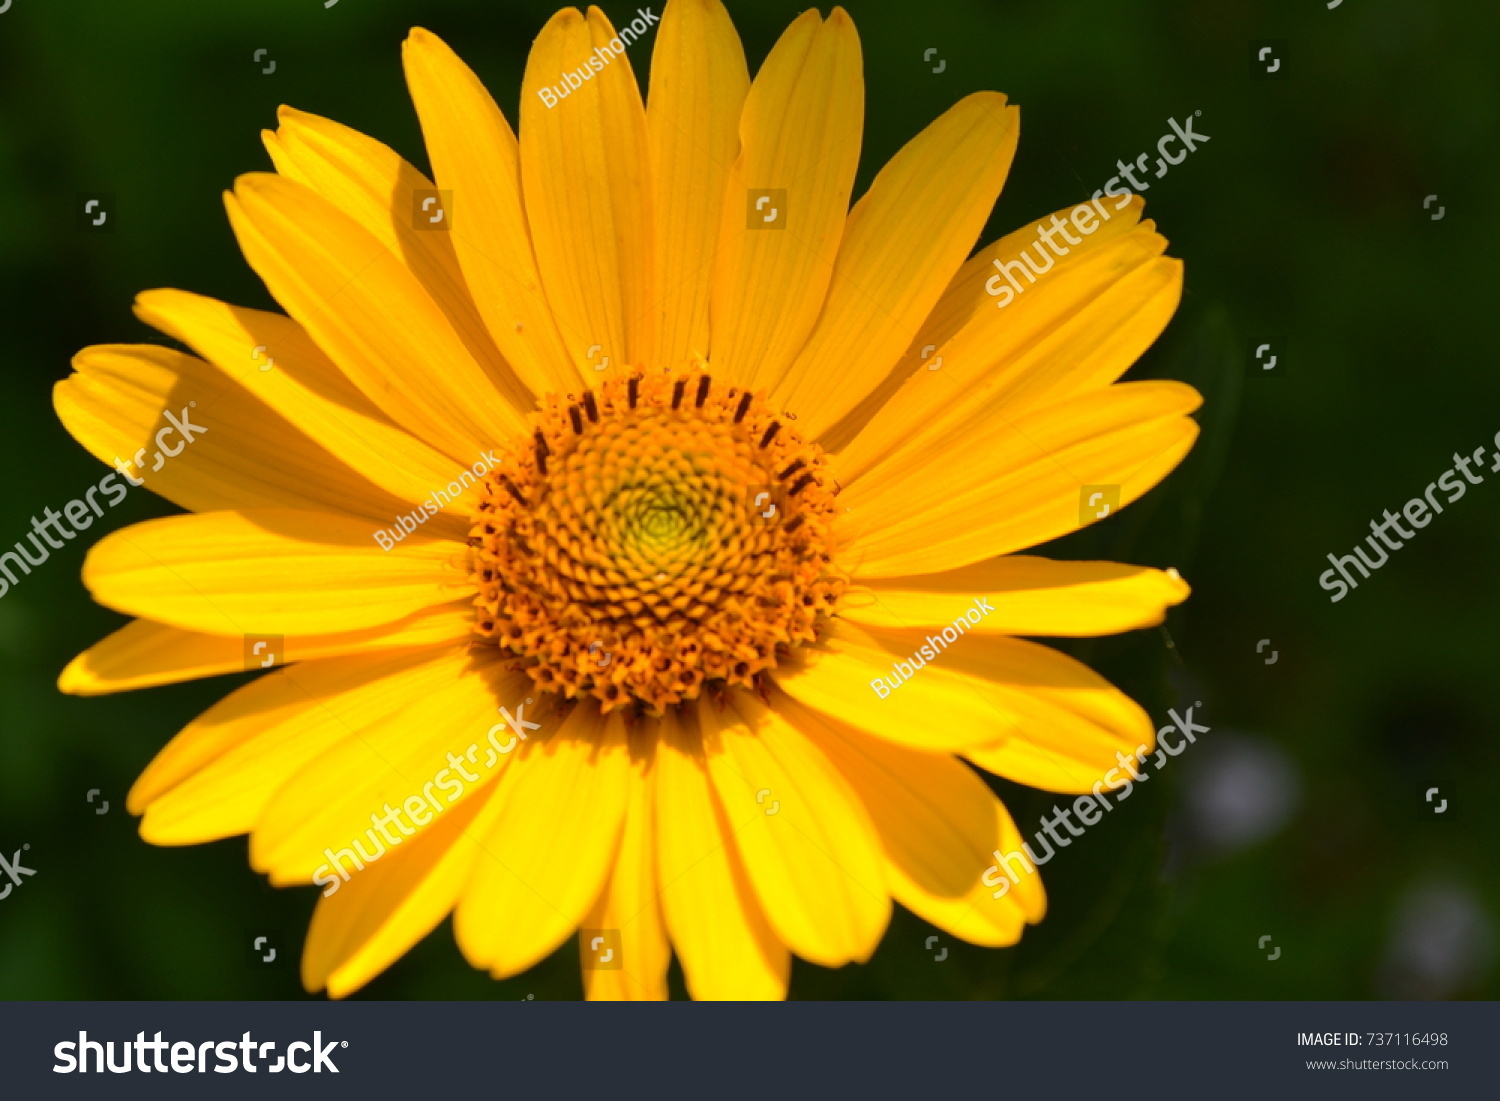 Heliopsis helianthoides perennial similar daisy tall stock photo heliopsis helianthoides perennial similar daisy tall stock photo royalty free 737116498 shutterstock izmirmasajfo